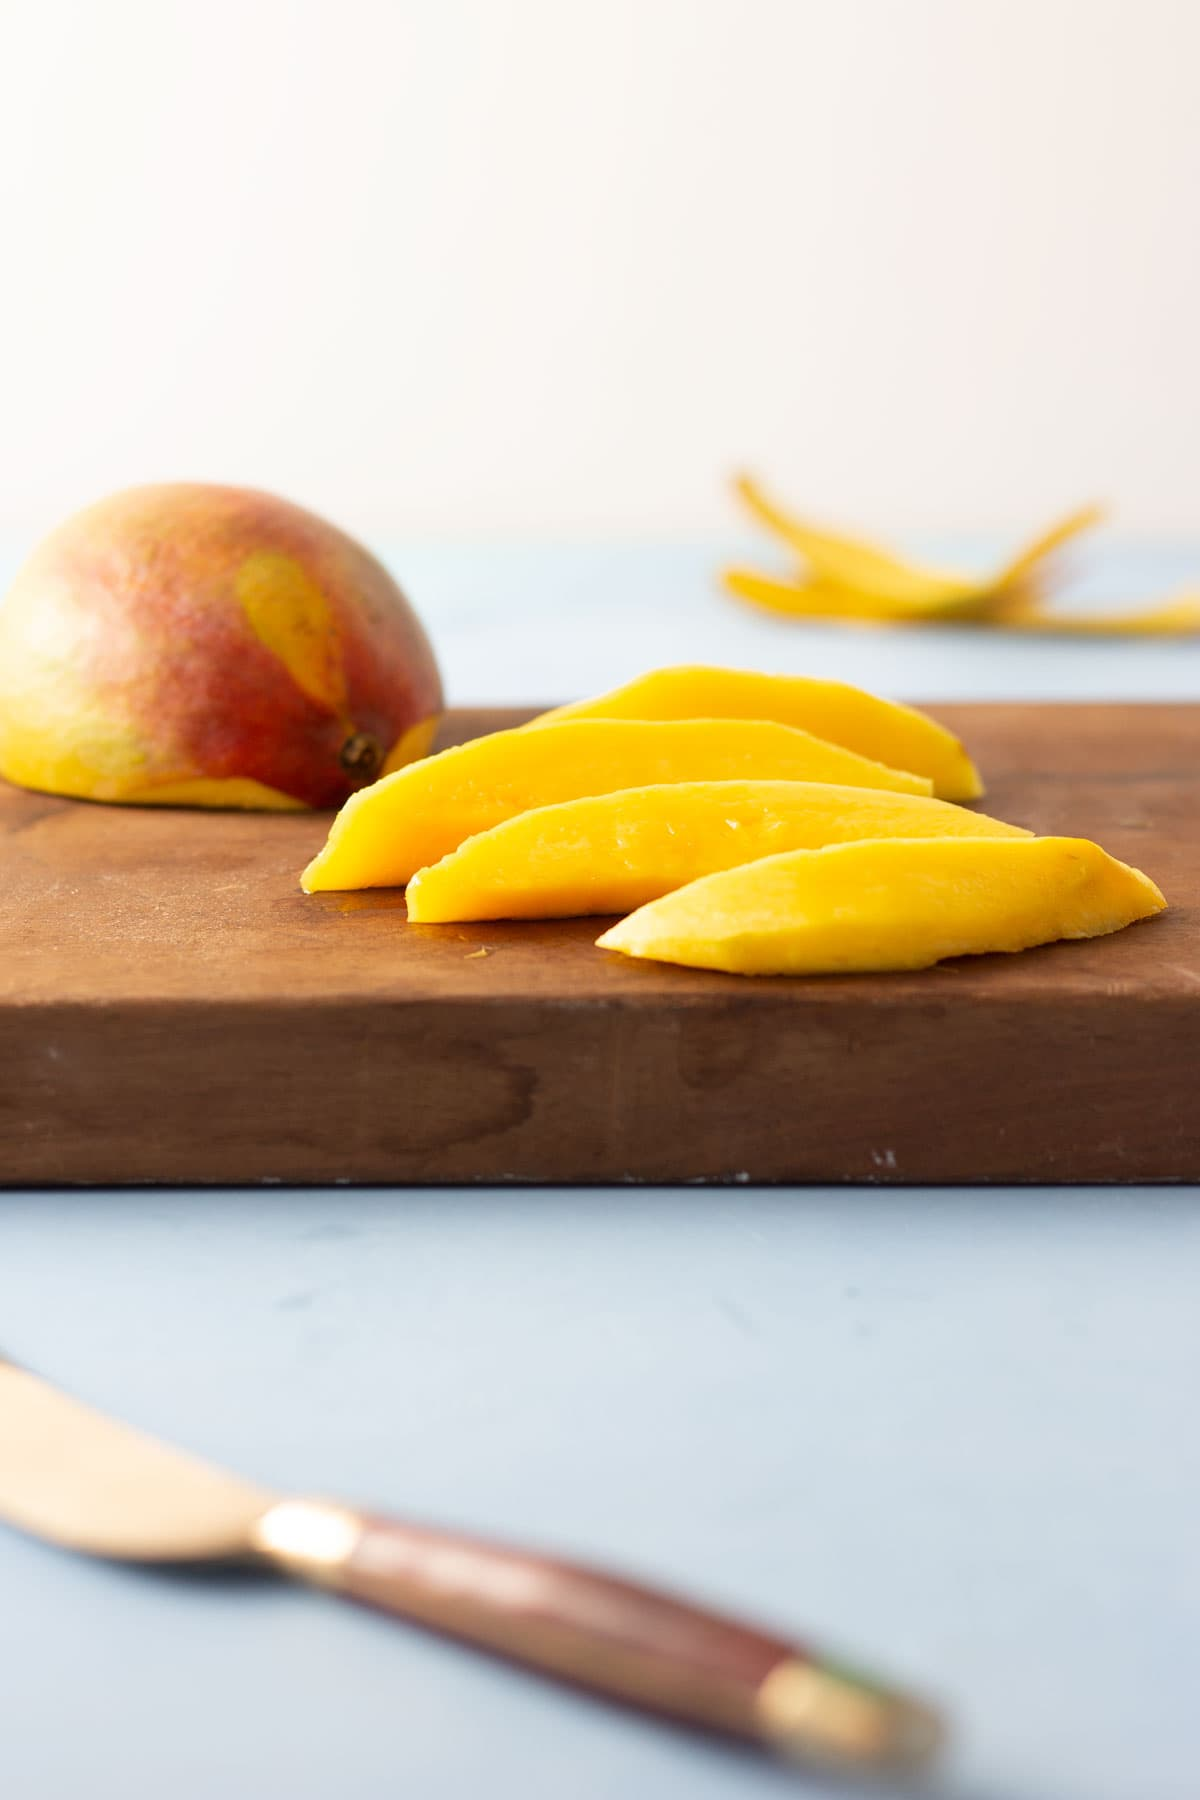 Fresh mango slices and half a mango on a cutting board with a knife in the forefront.